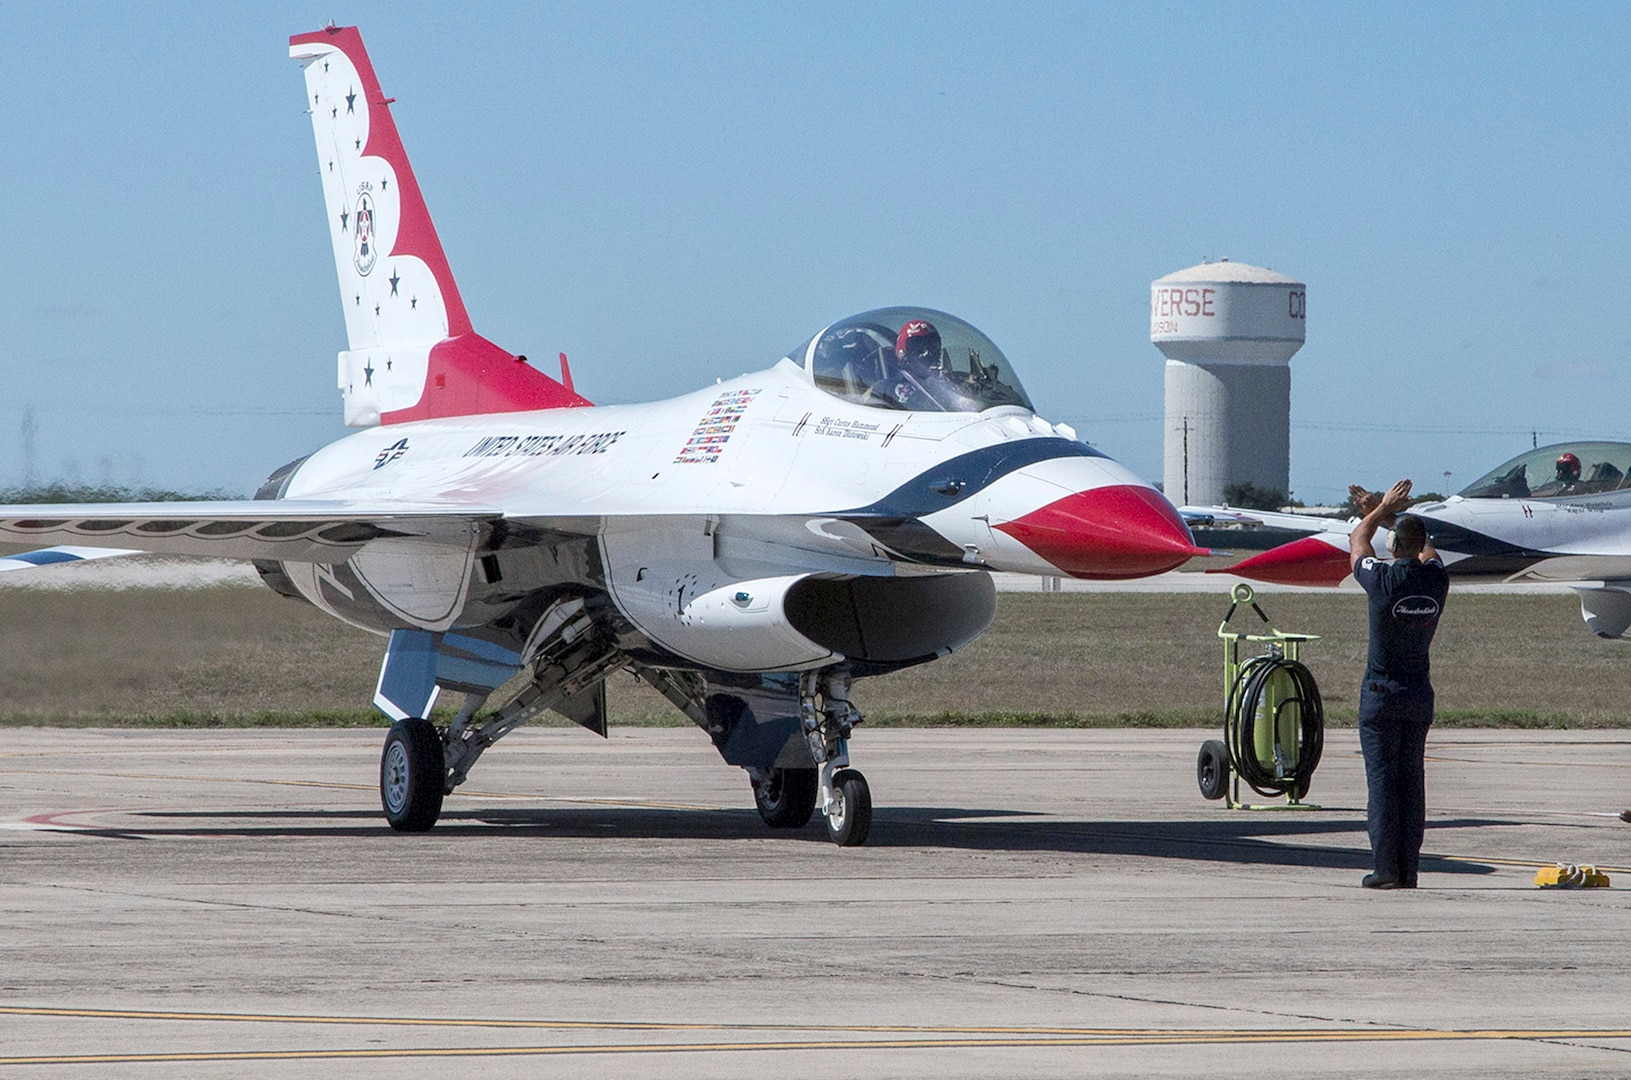 """Tech. Sgt. Christopher Audet, U.S. Air Force Air Demonstration Squadron """"Thunderbirds"""" tactical aircraft maintainer, guides a Thunderbird Oct. 26, 2015 at Joint Base San Antonio-Randolph, Texas. The Thunderbirds team members arrived in preparation for the 2015 JBSA-Randolph Air Show and Open House to be held Oct. 31 and Nov. 1.  Air shows allow the Air Force to display the capabilities of our aircraft to the American taxpayer through aerial demonstrations and static displays and allowing attendees to get up close and personal to see some of the equipment and aircraft used by the U.S. military today.  (U.S. Air Force photo by Johnny Saldivar/Released)"""